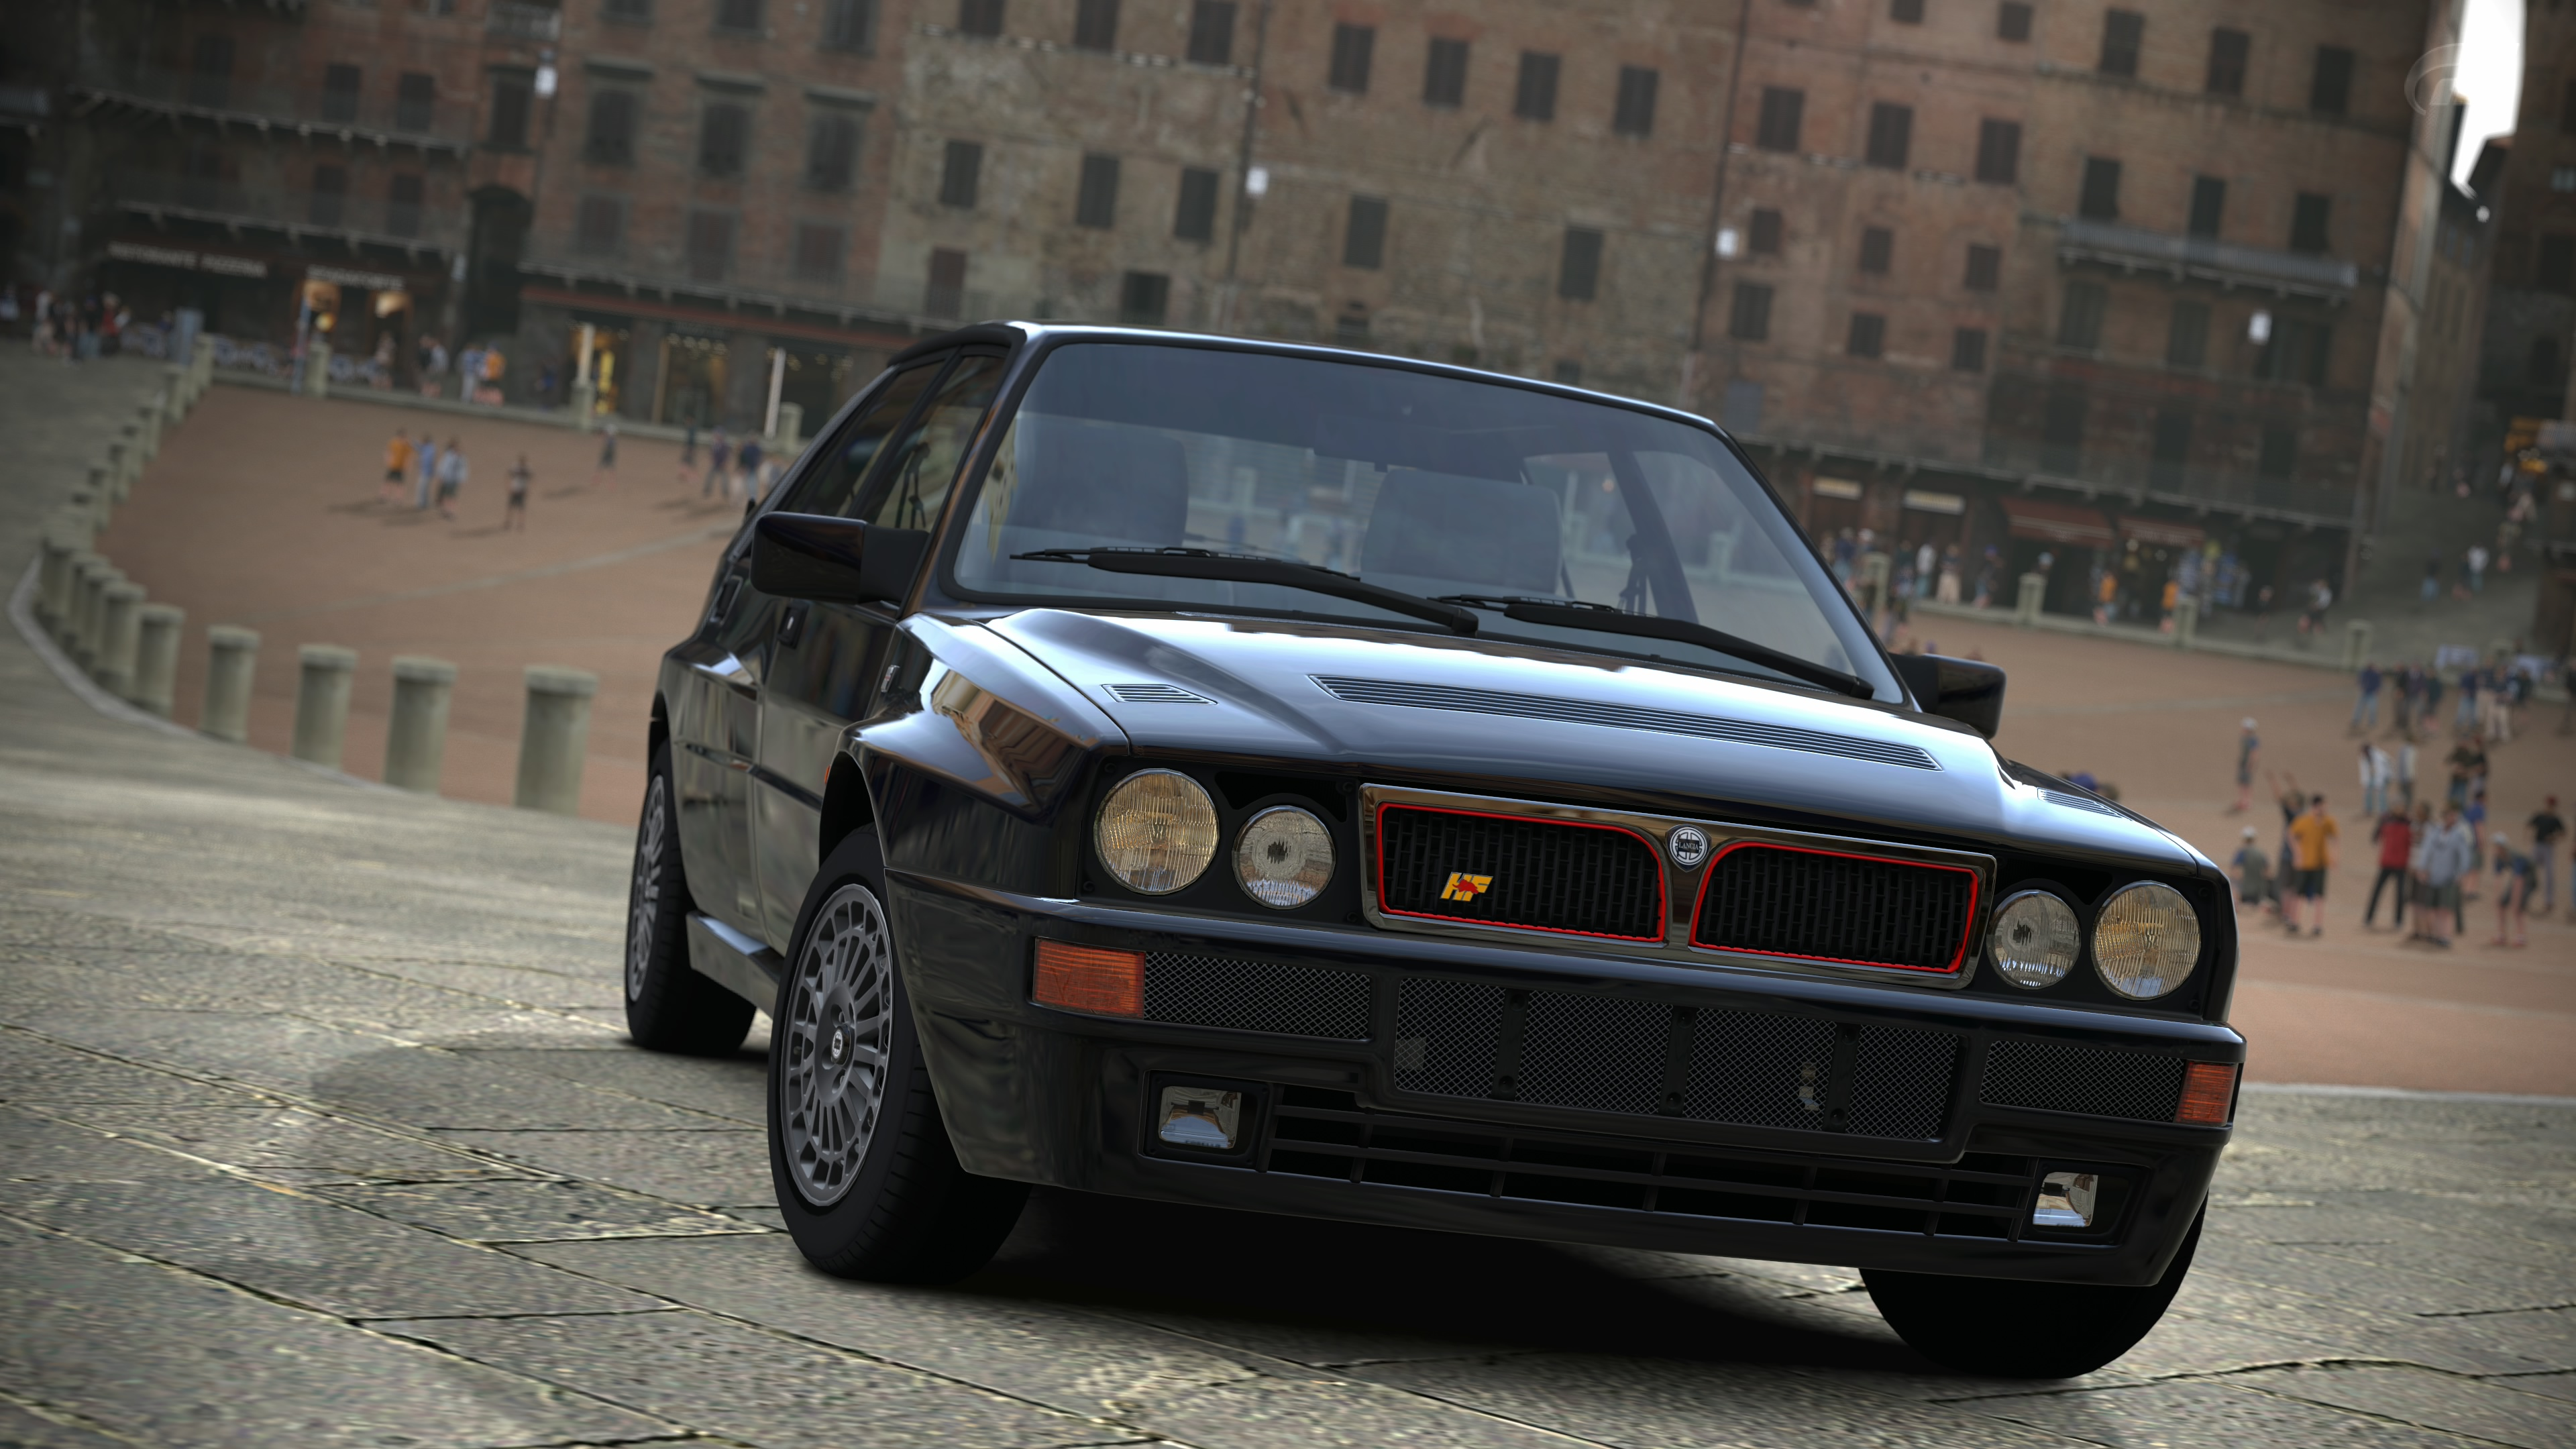 Lancia delta hf intergrale photo